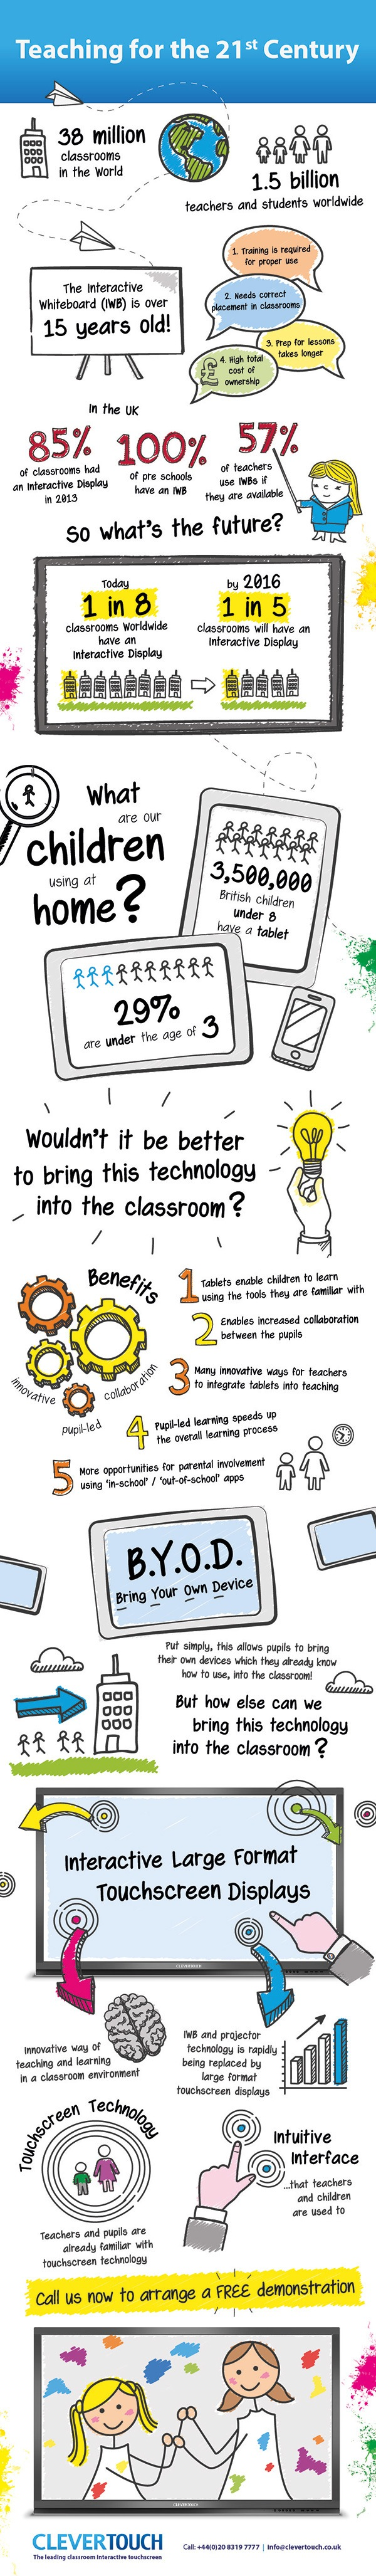 21st Century Teaching Infographic